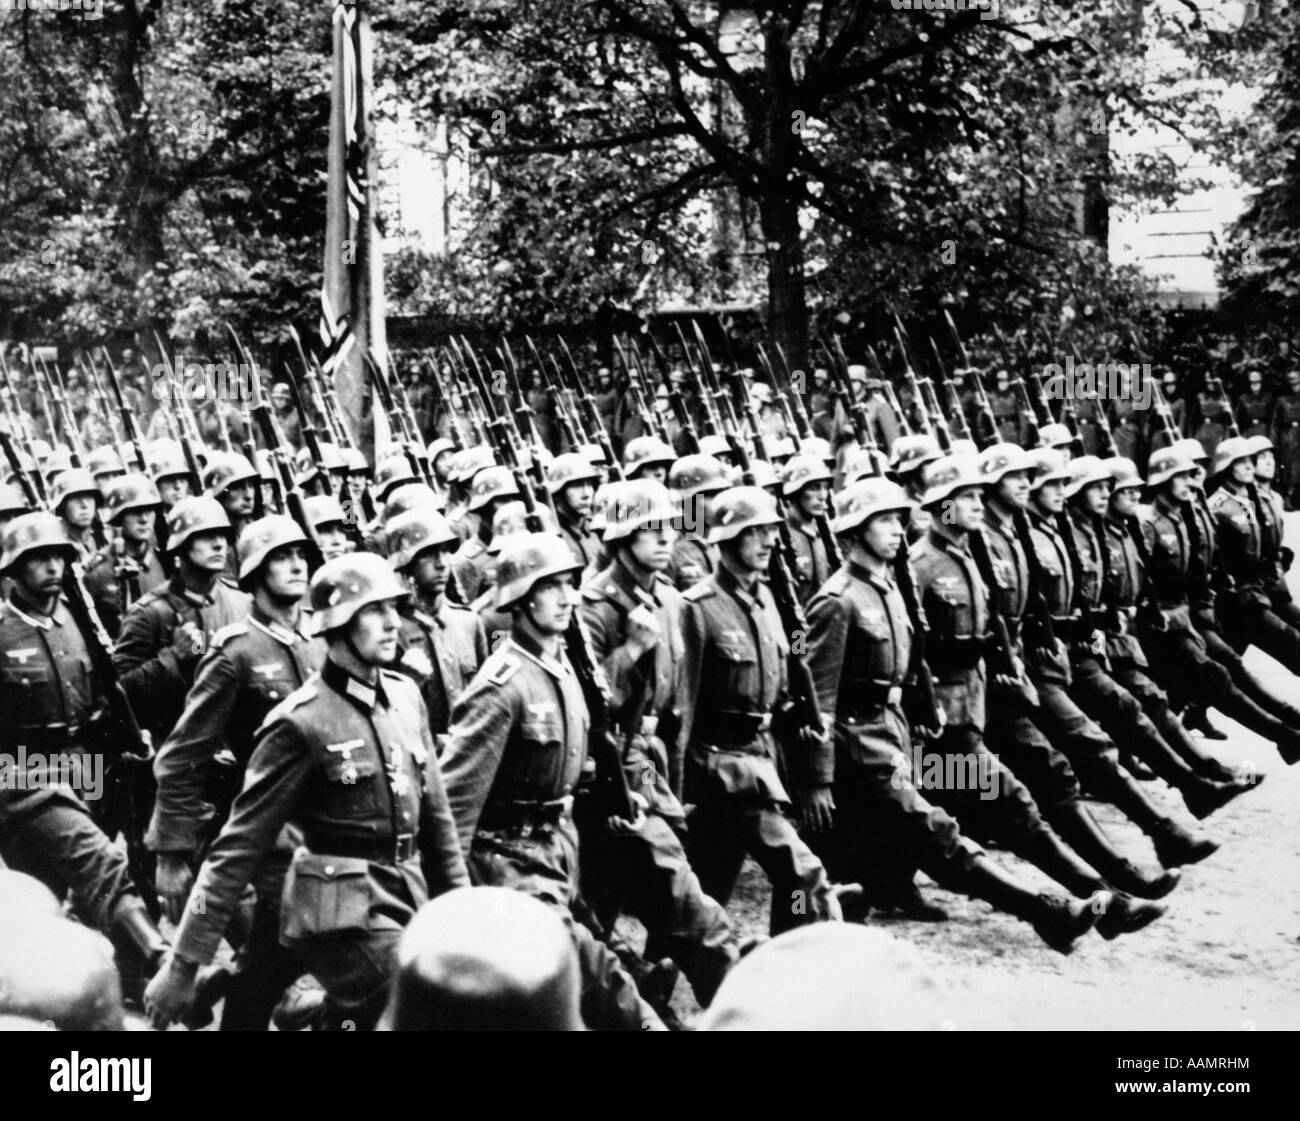 1940s GERMAN TROOPS MARCHING GOOSE STEPPING IN STREETS OF WARSAW POLAND 1941 - Stock Image